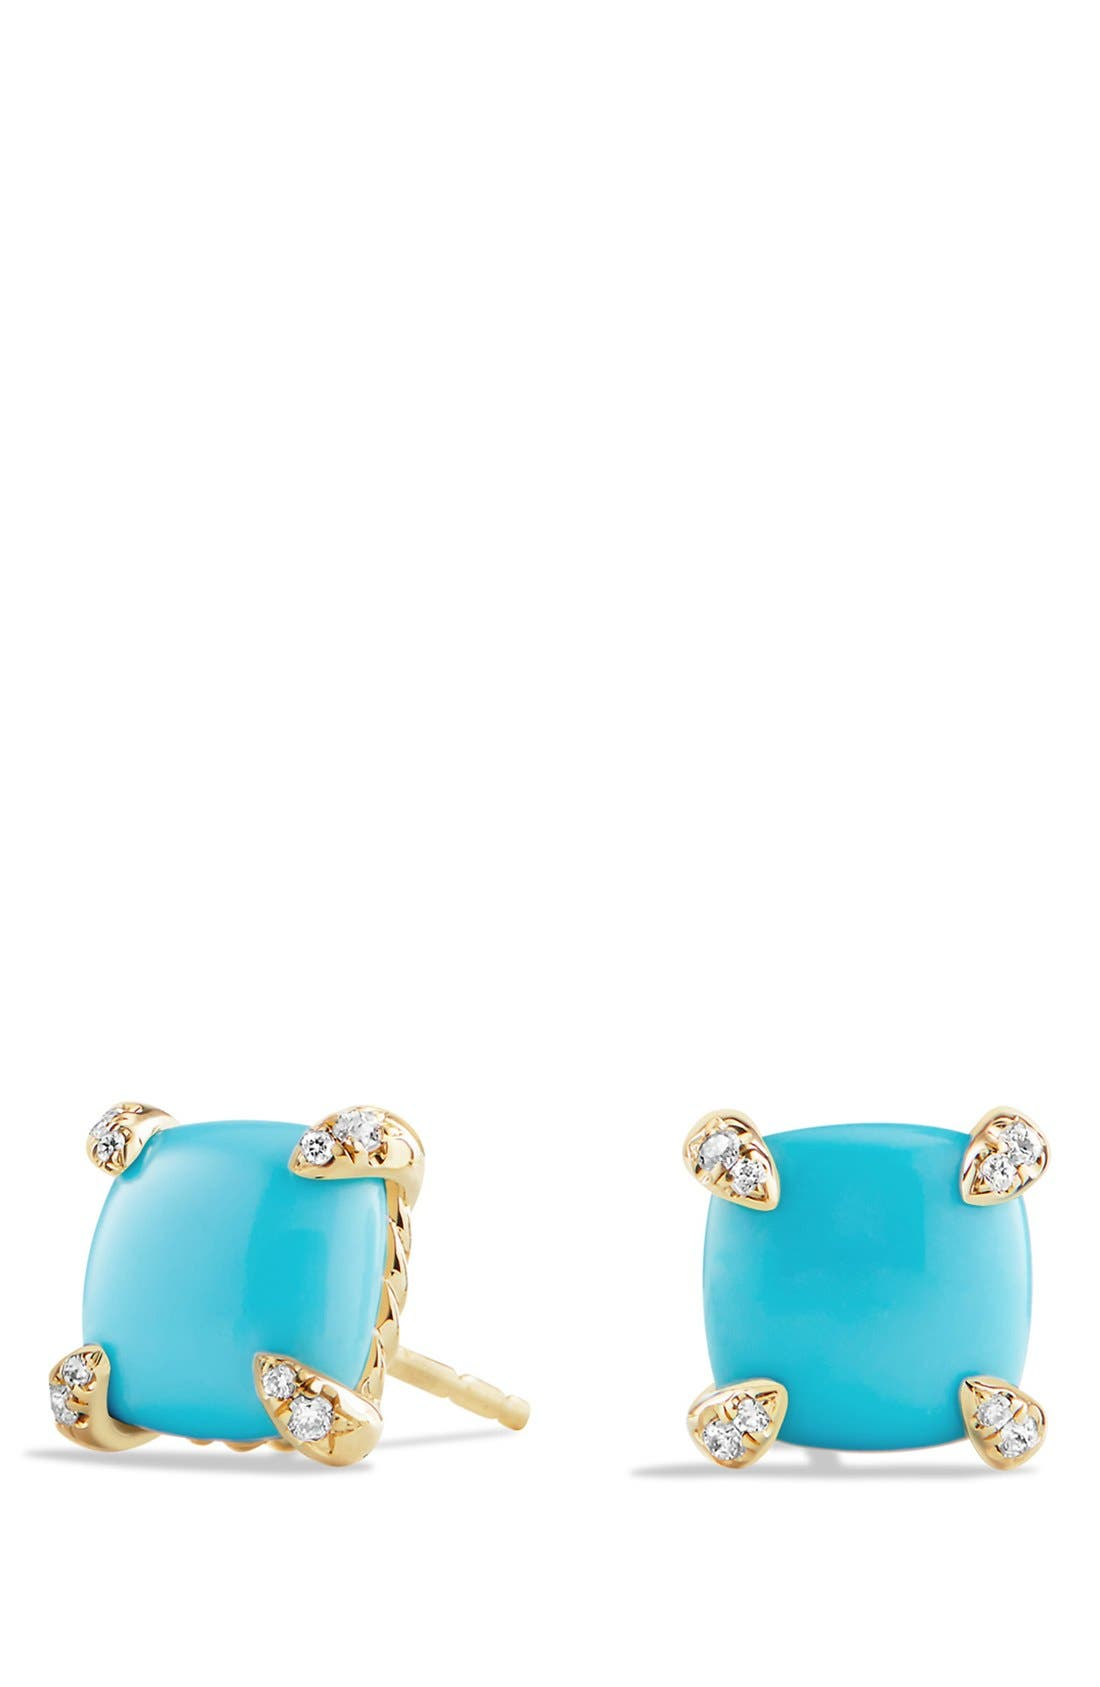 DAVID YURMAN 'Châtelaine' Earrings with Semiprecious Stones in